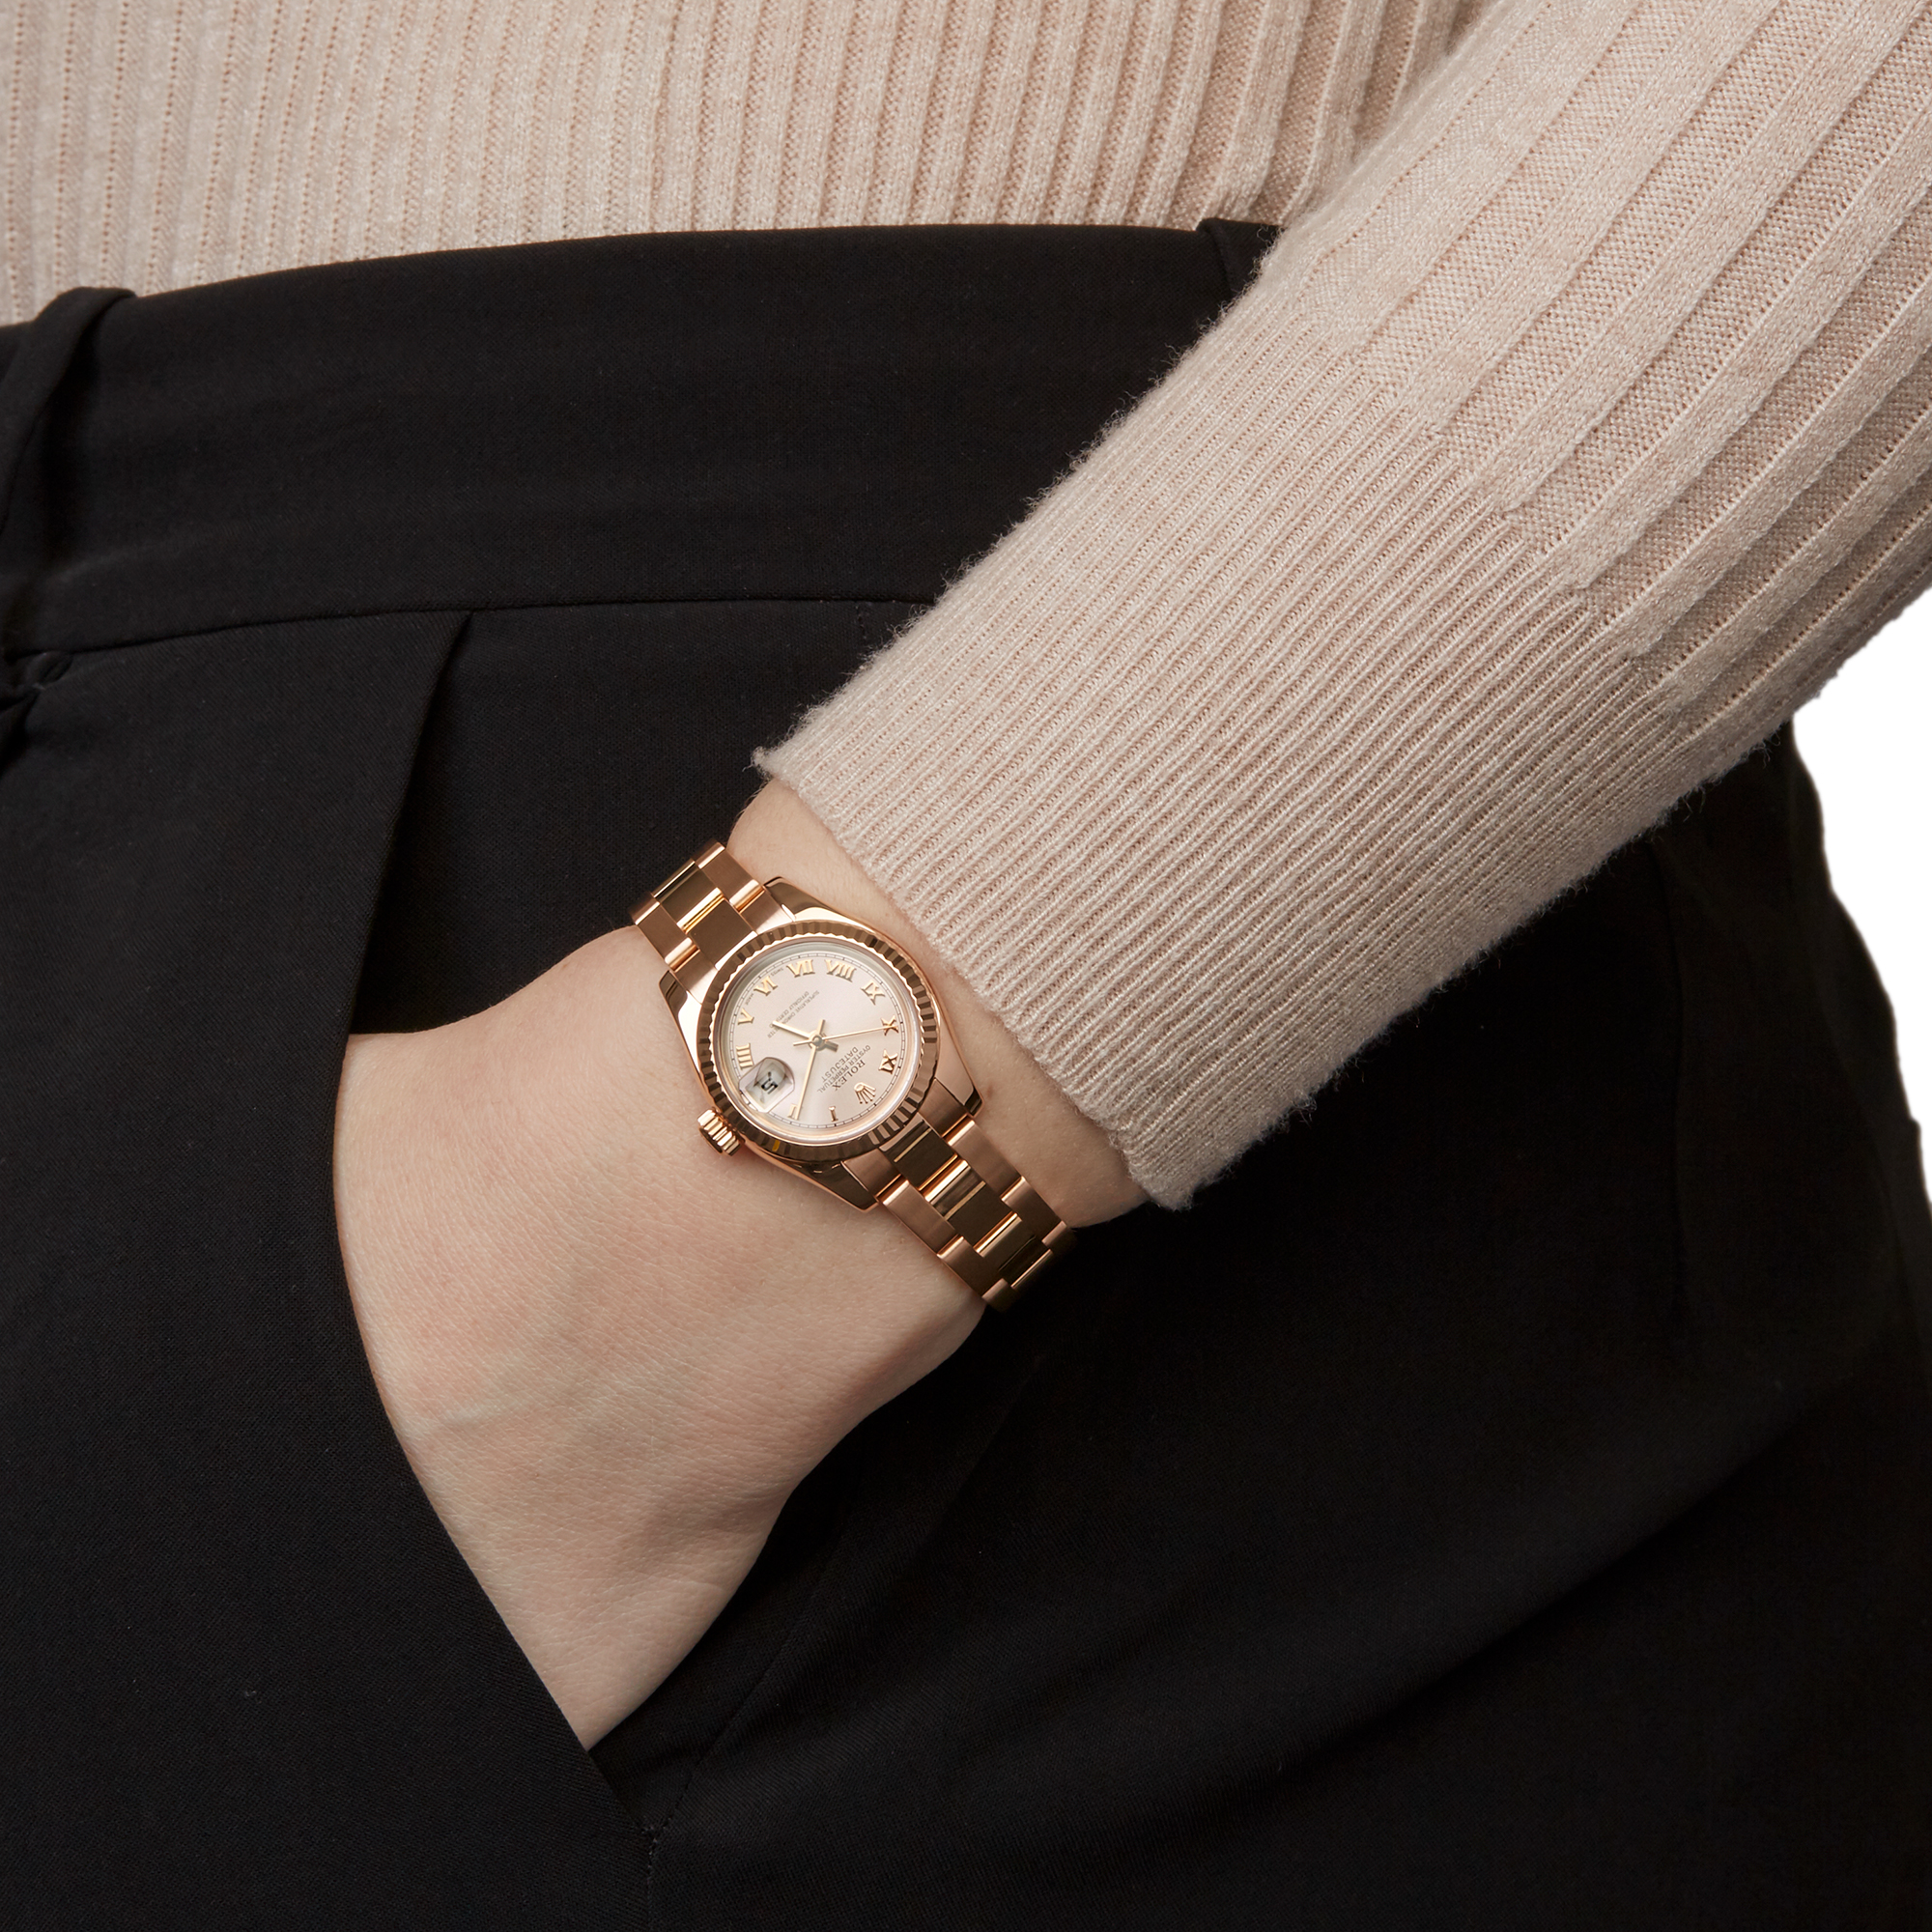 Rolex Datejust 26 179175 Ladies Rose Gold Watch - Image 2 of 8